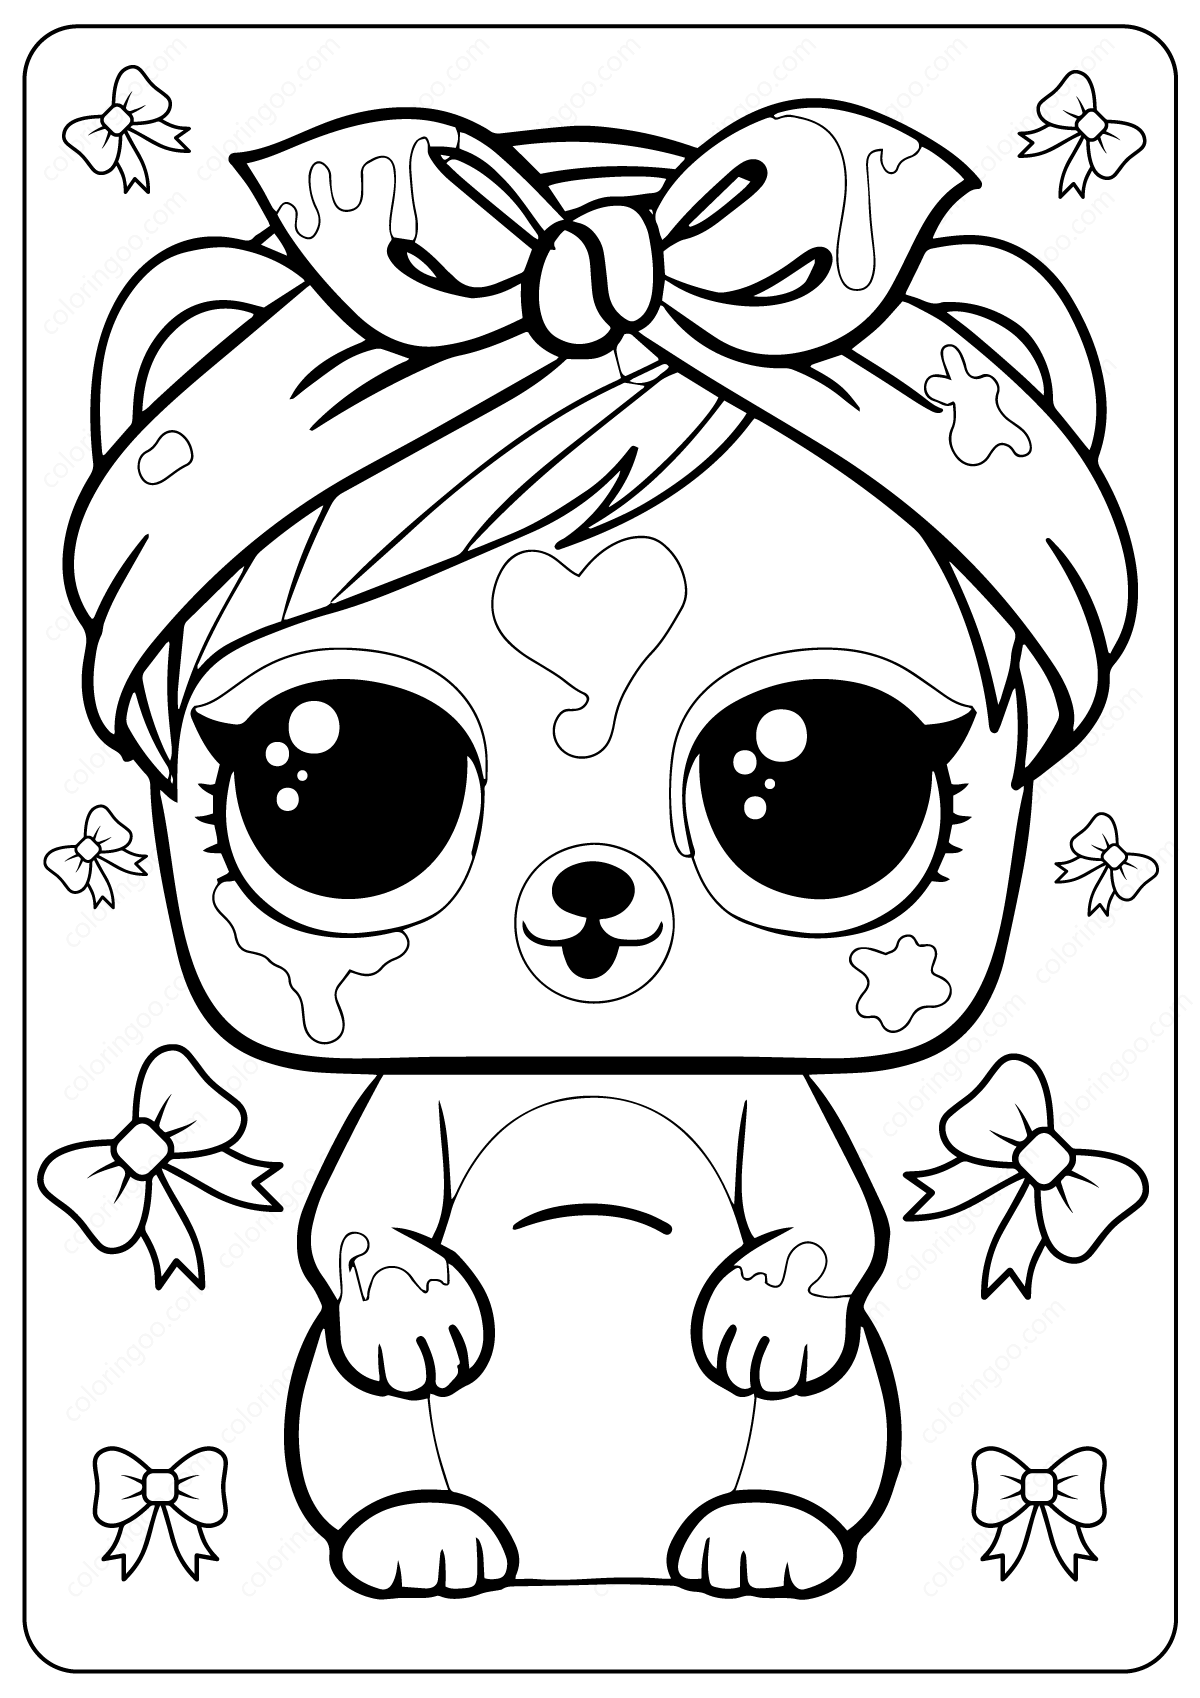 Free Printable Lol Surprise Coloring Pages In 2020 Fairy Coloring Pages Barbie Coloring Pages Cartoon Coloring Pages